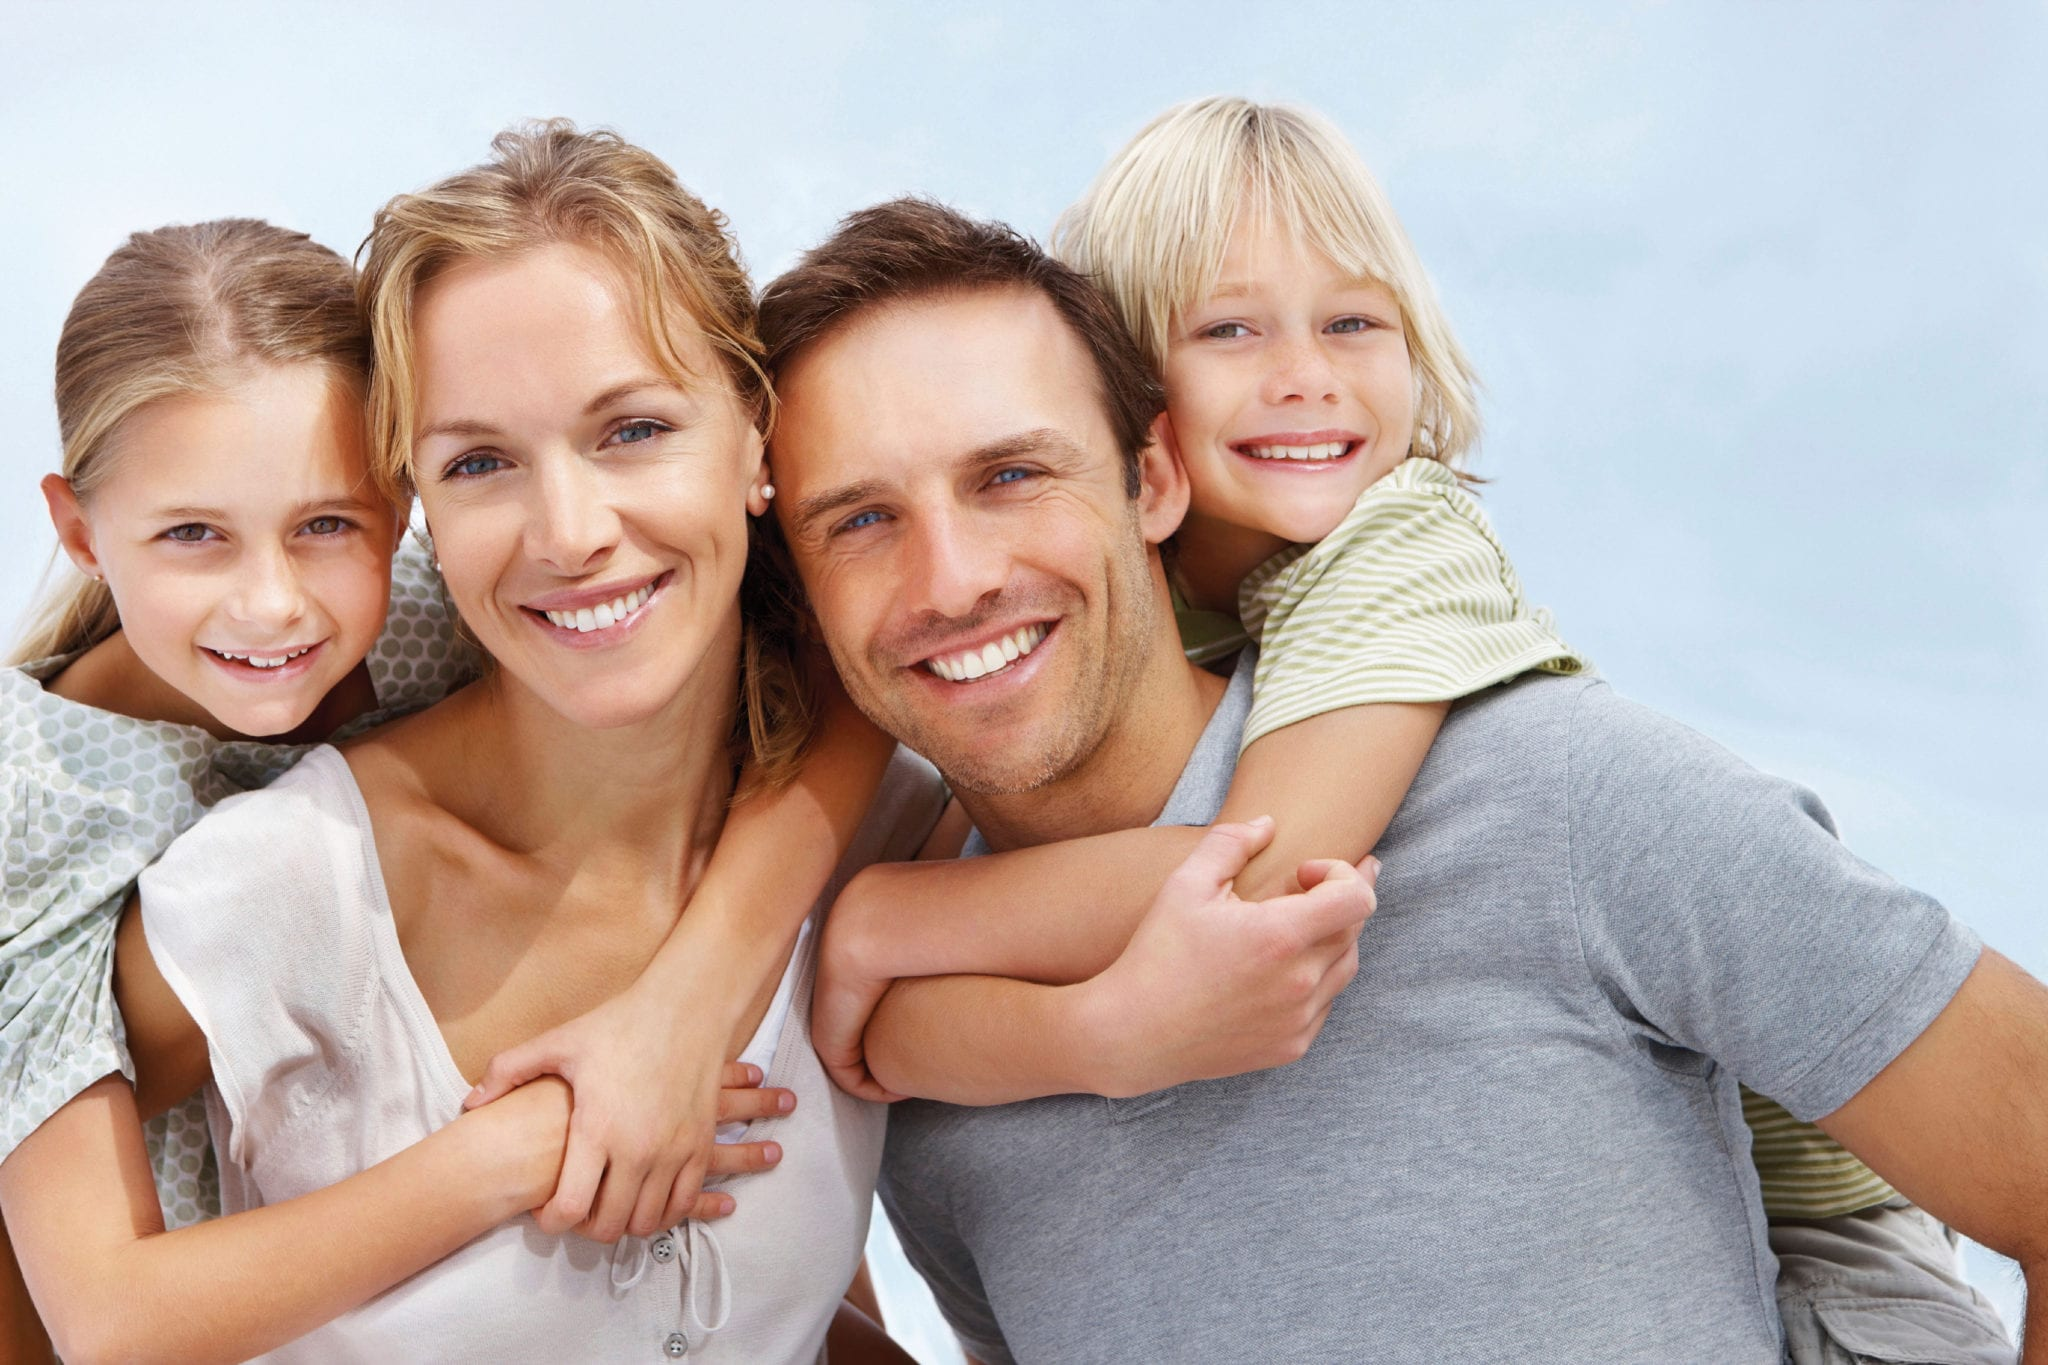 Personal Loans Without Credit Check – Is It Possible?